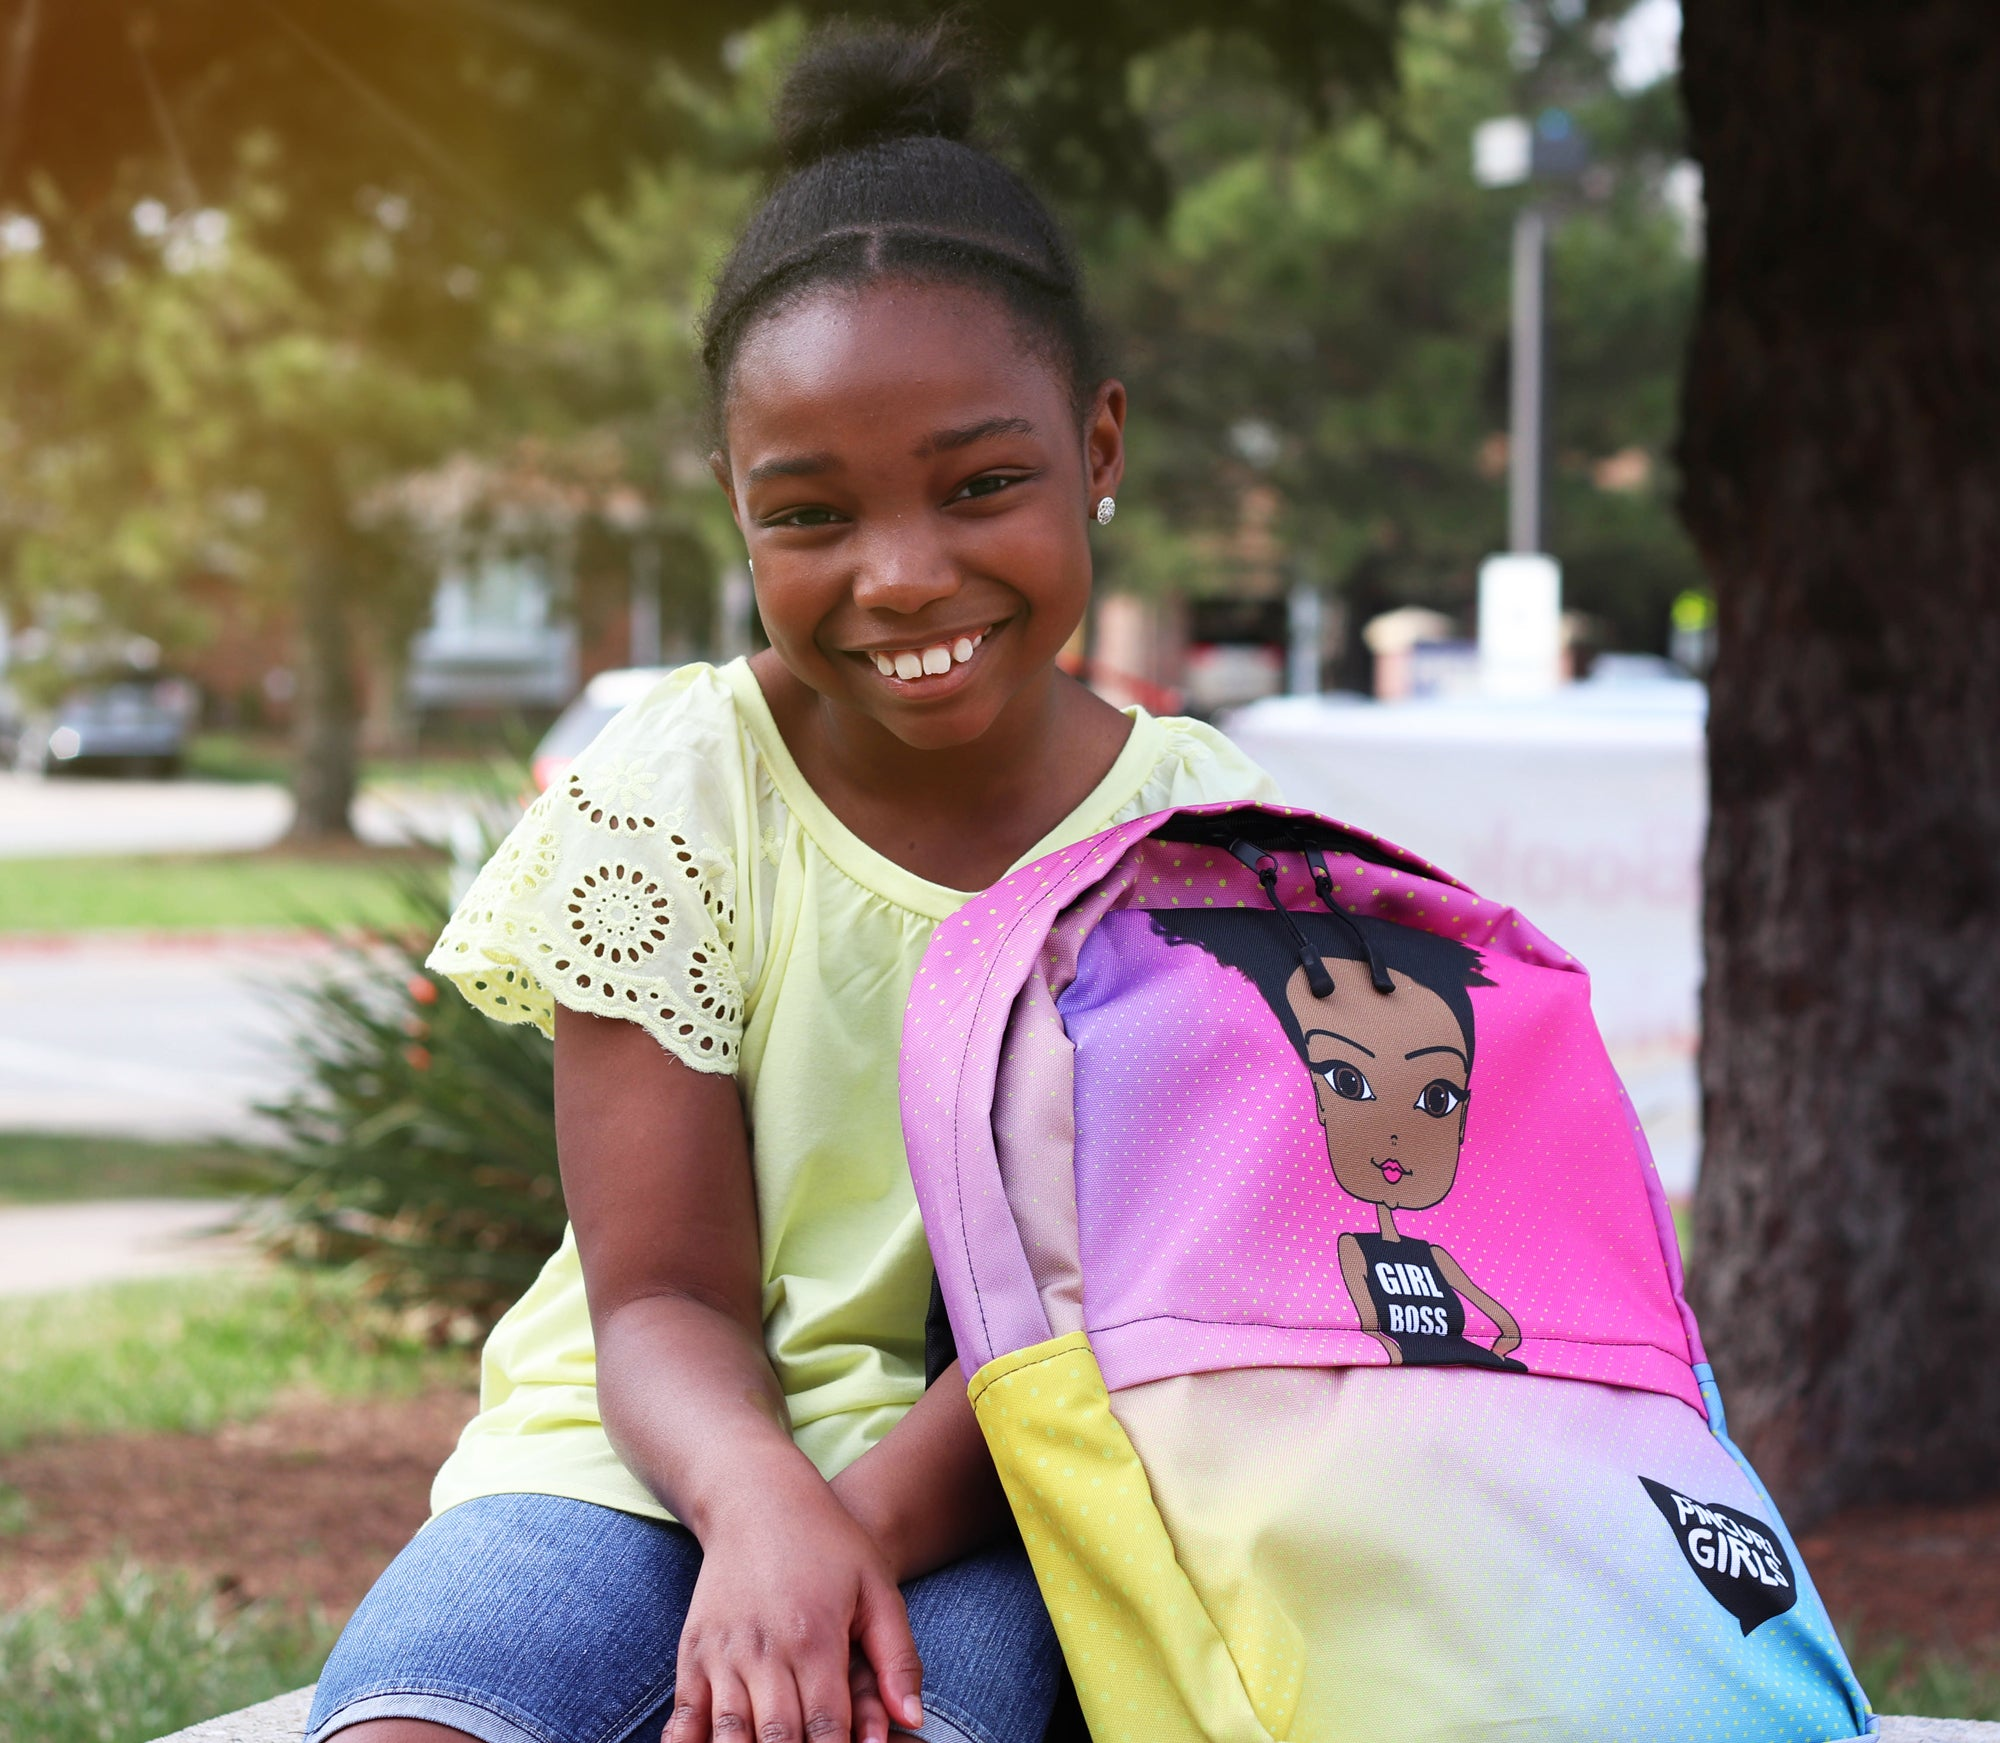 African American Backpack, Rainbow colors, GIRL BOSS,  Pincurl Girls